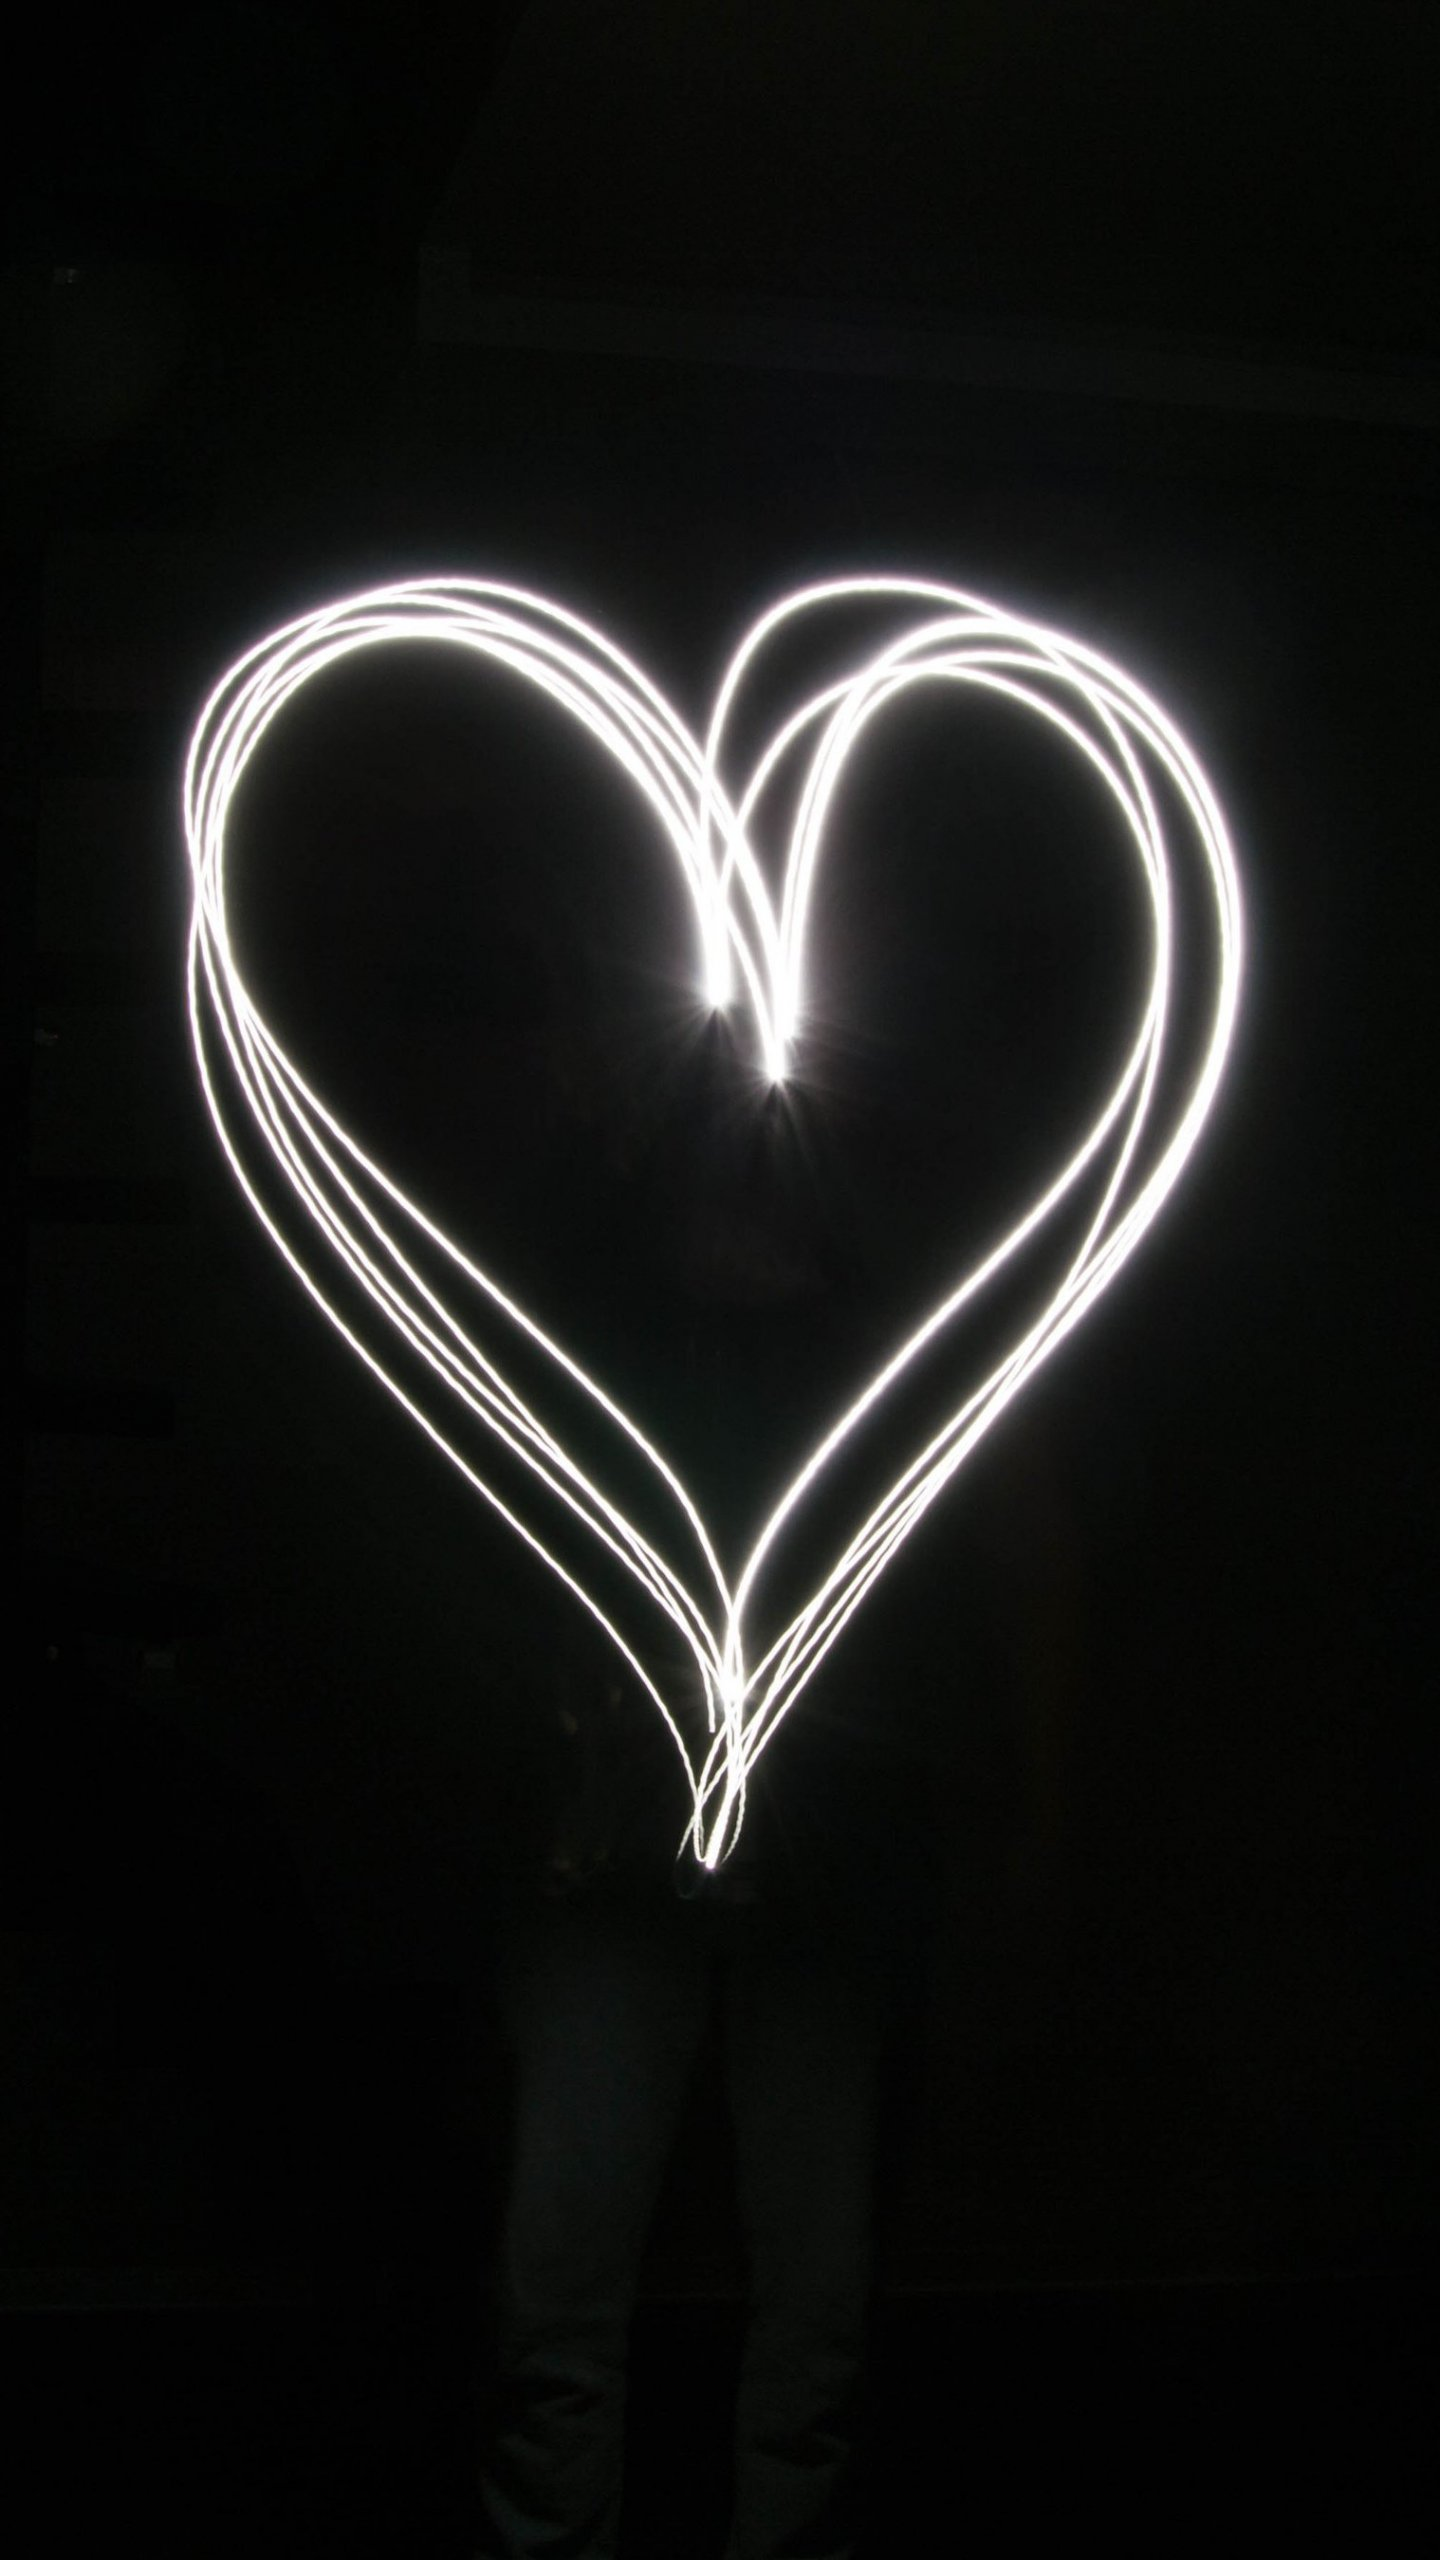 Black And White Heart Wallpaper Posted By Samantha Walker